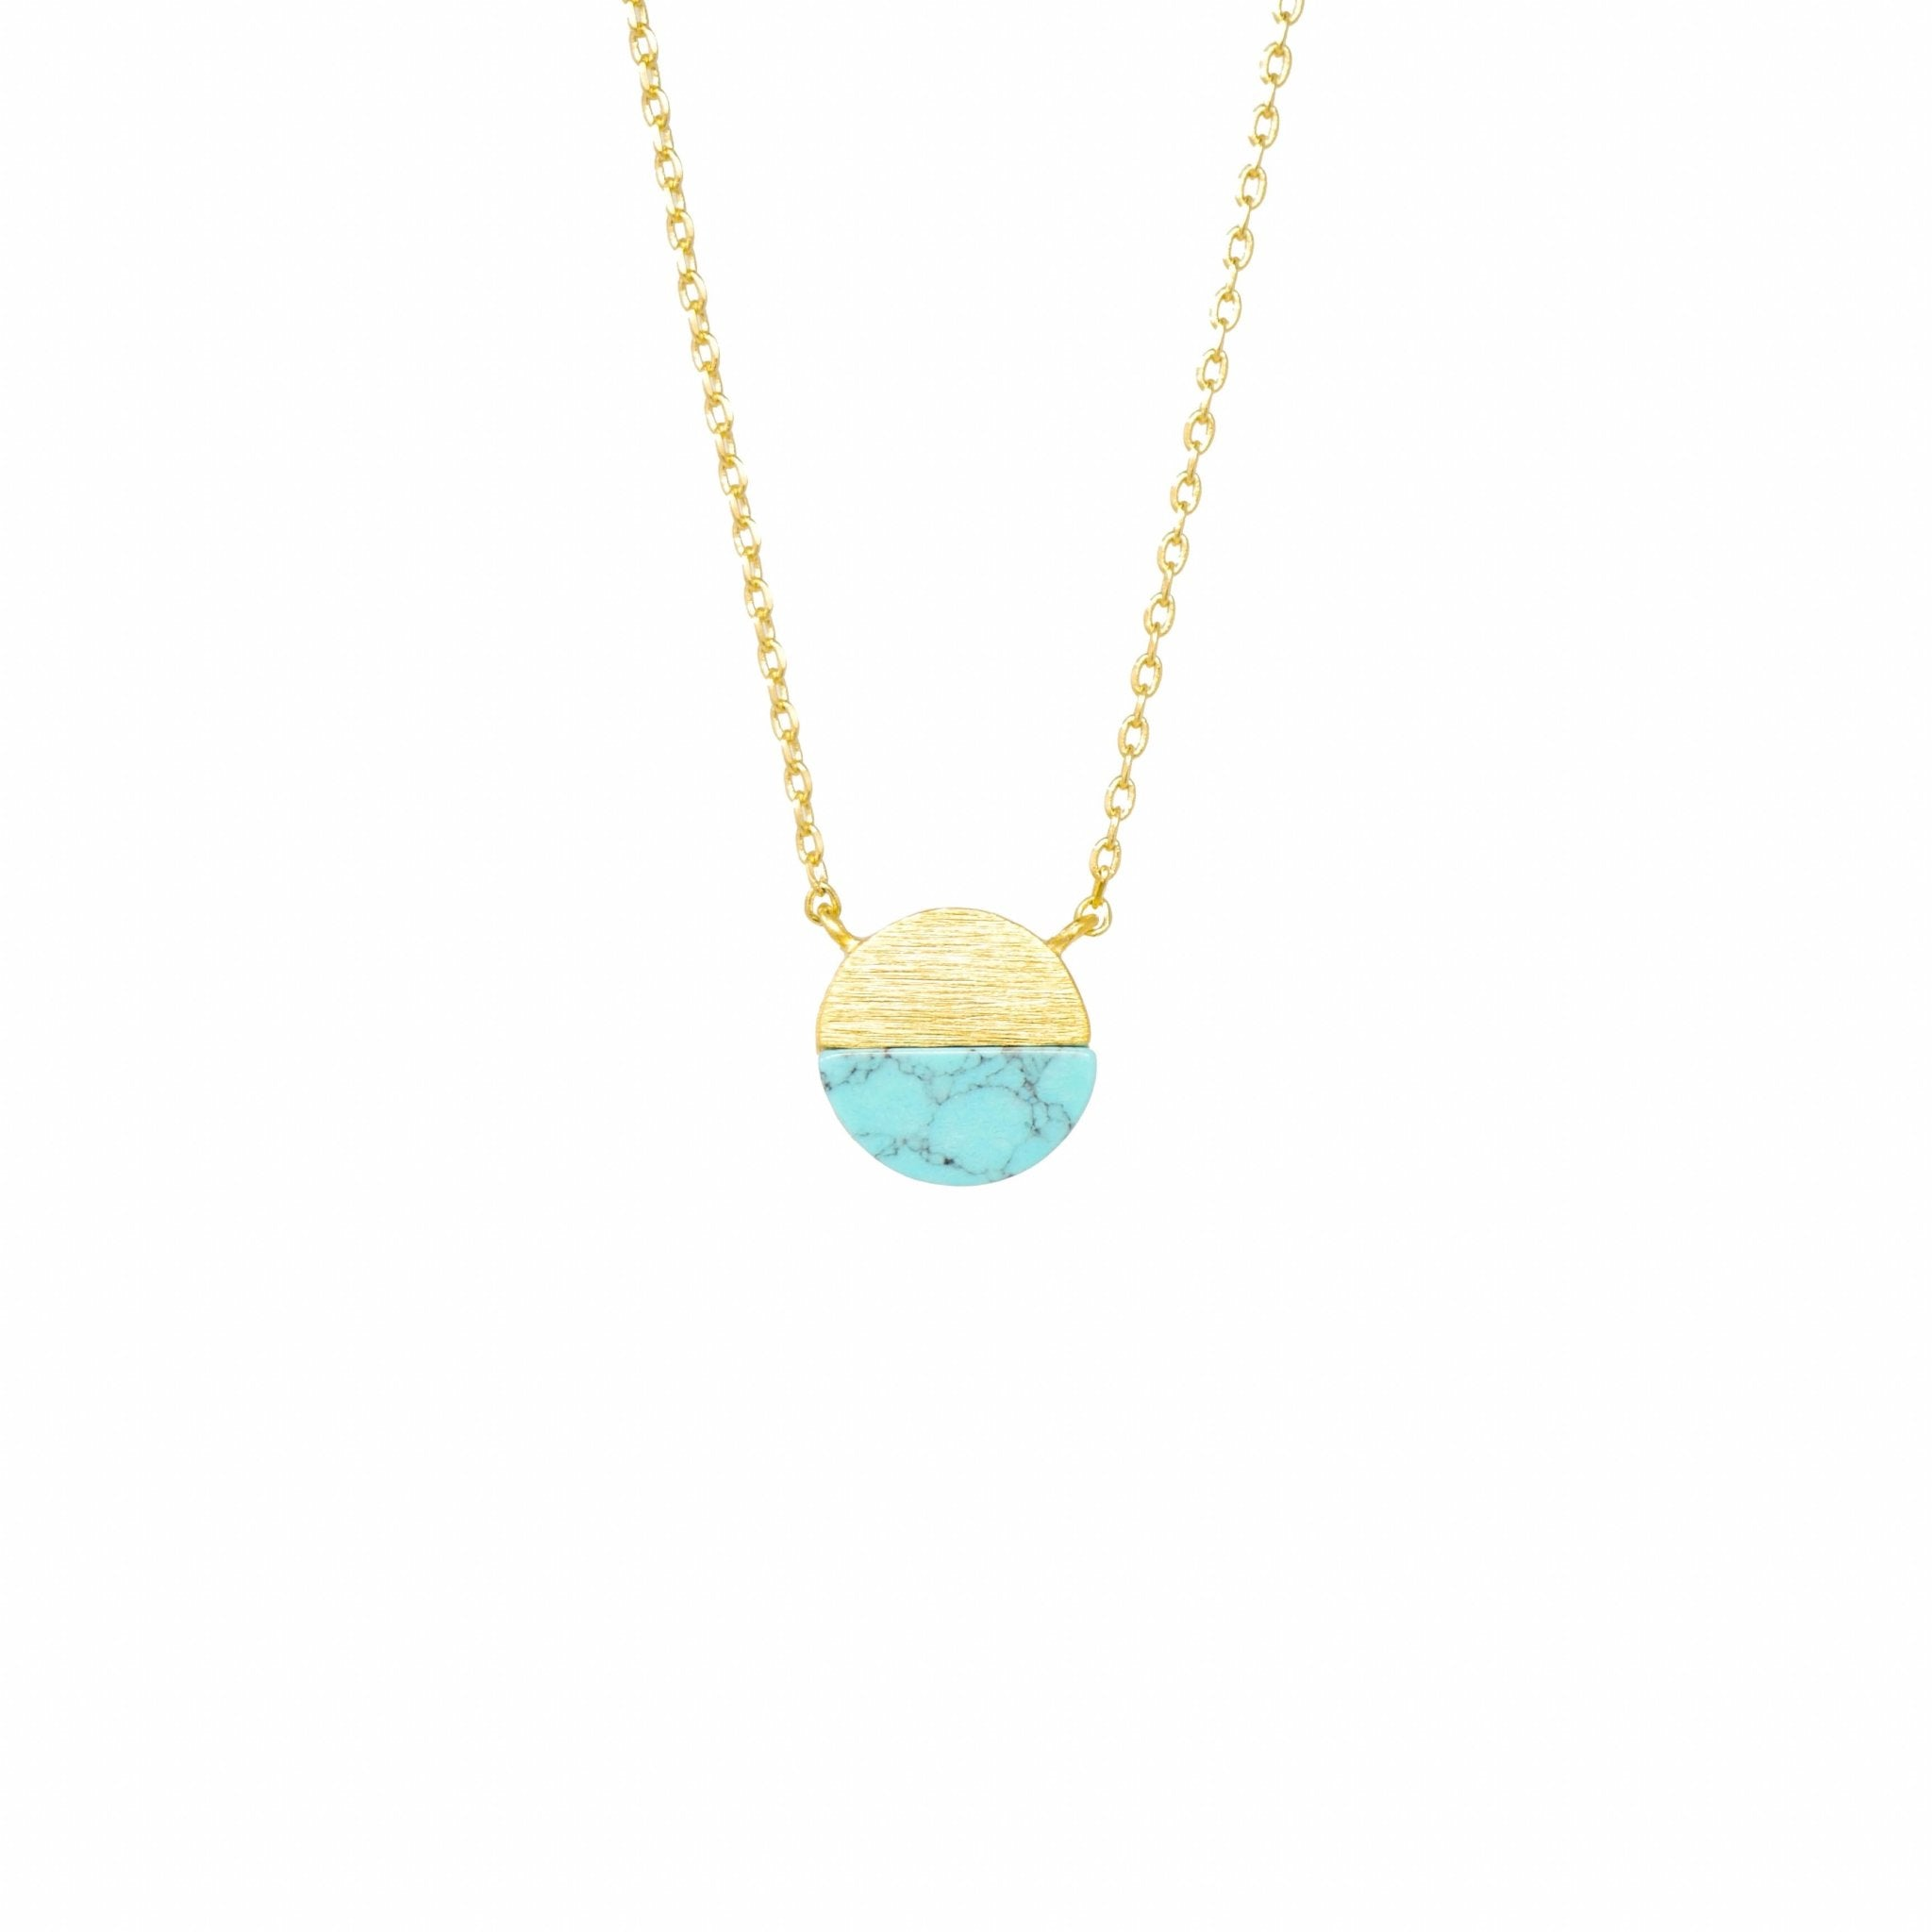 Turquoise Semicircle Necklace - Mayblu